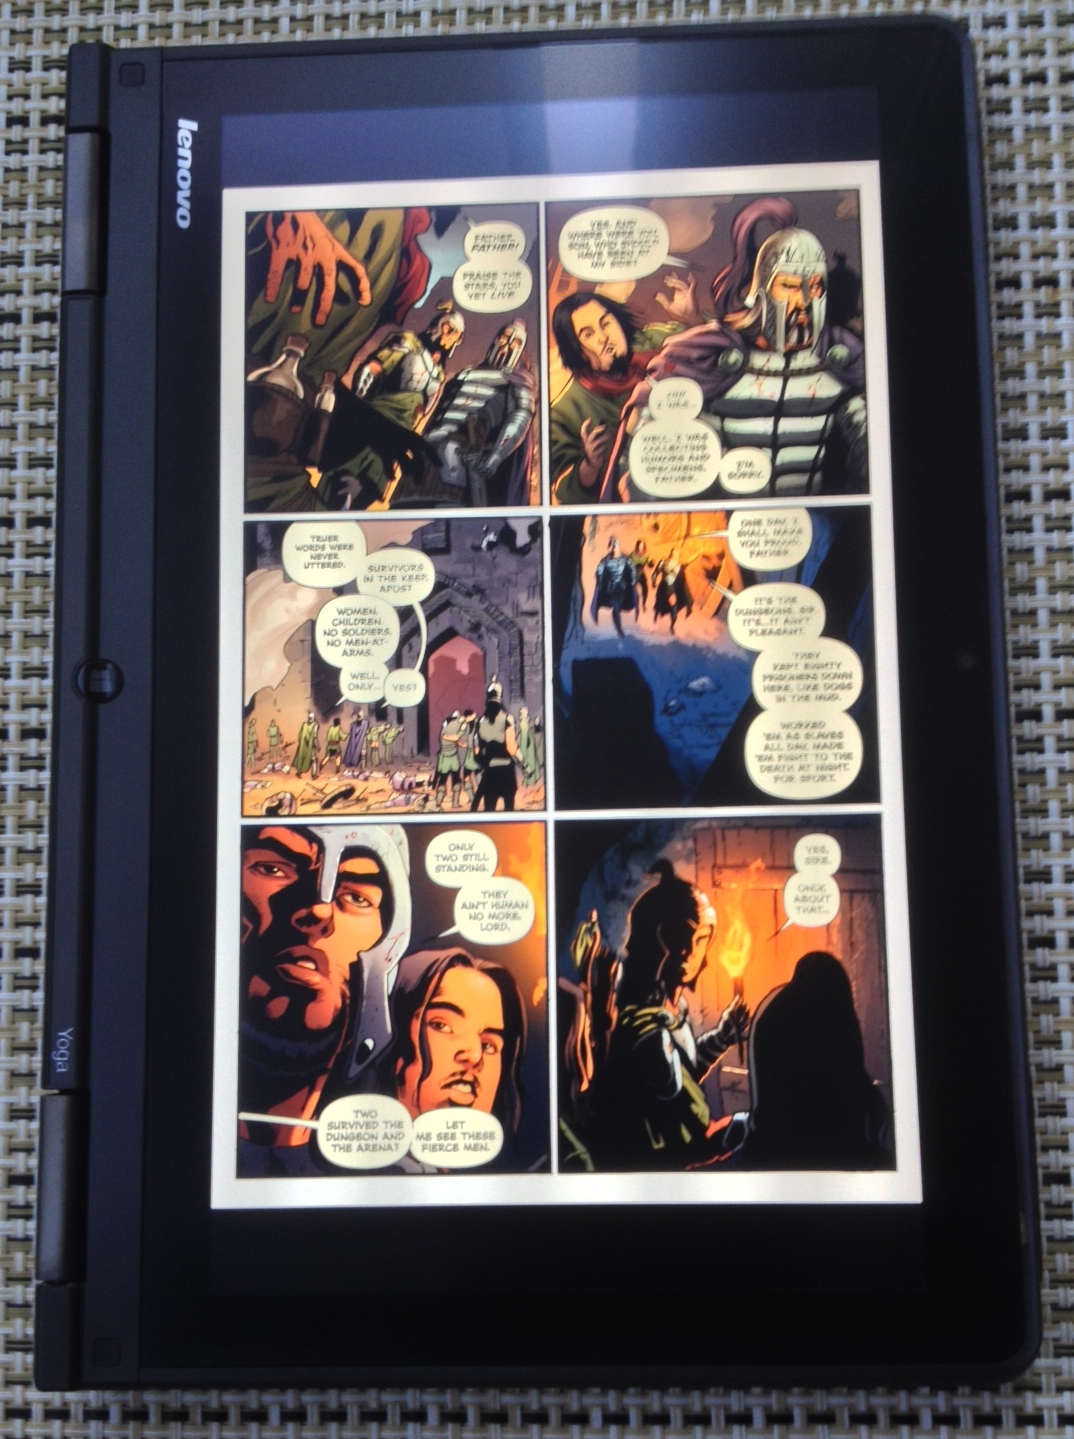 Although the active display is just shy of 11-inches tall in portrait mode, it's only 6.1 inches wide. A standard American comic like this page from Dynamite's Red Sonja #1 has to be reduced to fit horizontally, leaving two .8 inch black bars at the top and bottom of the screen. I'm still pining for the perfect 8.5 x 11 display where my comics and magazines wouldn't have to be reduced at all.